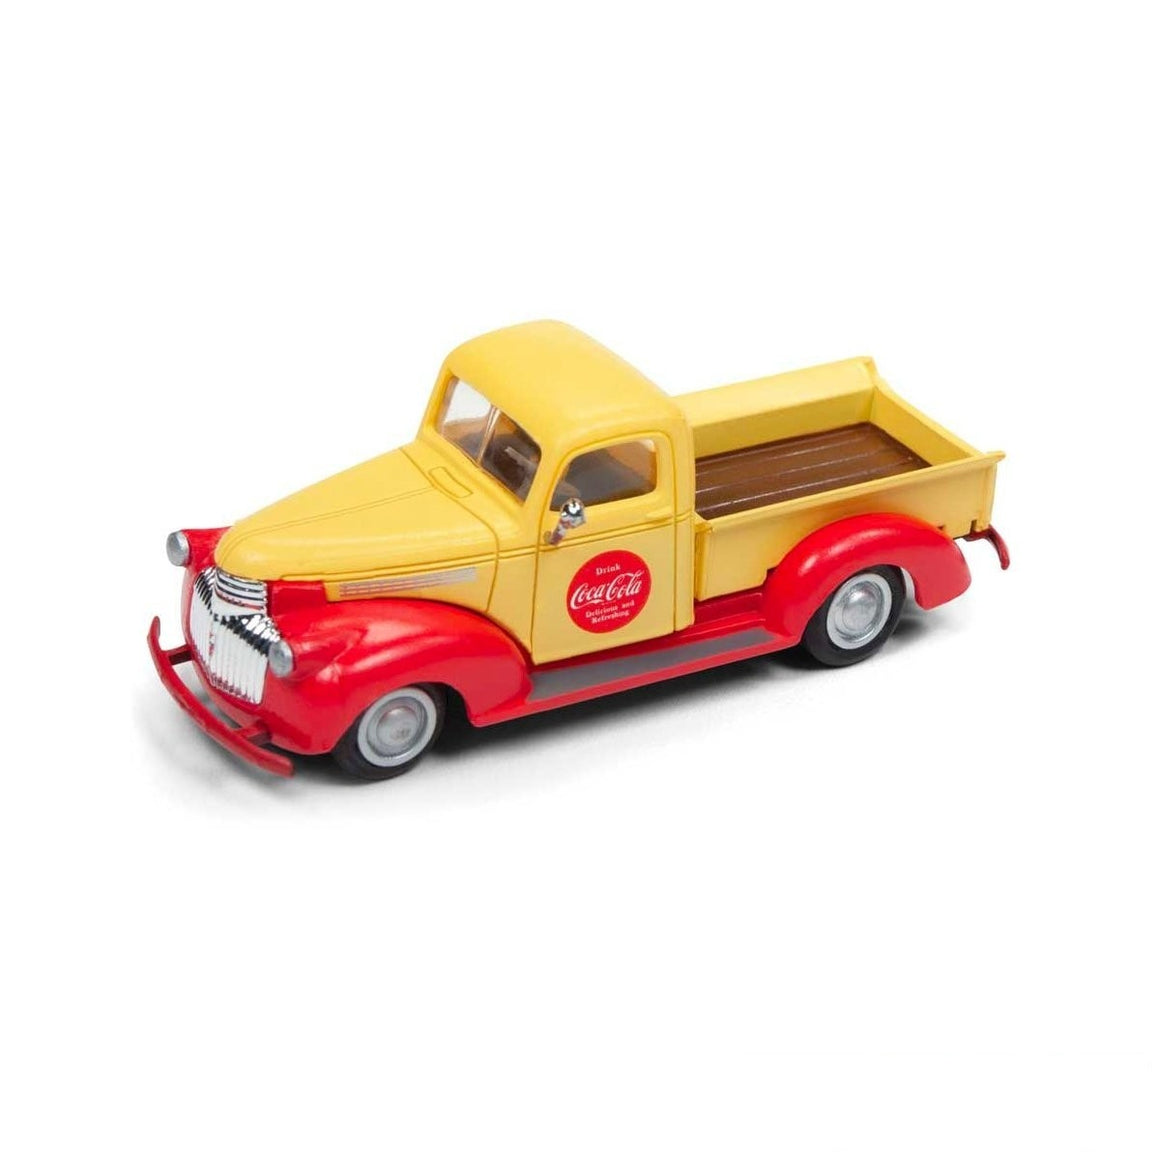 HO Scale: 1941-46 Chevy Pickup Truck - Coca-Cola